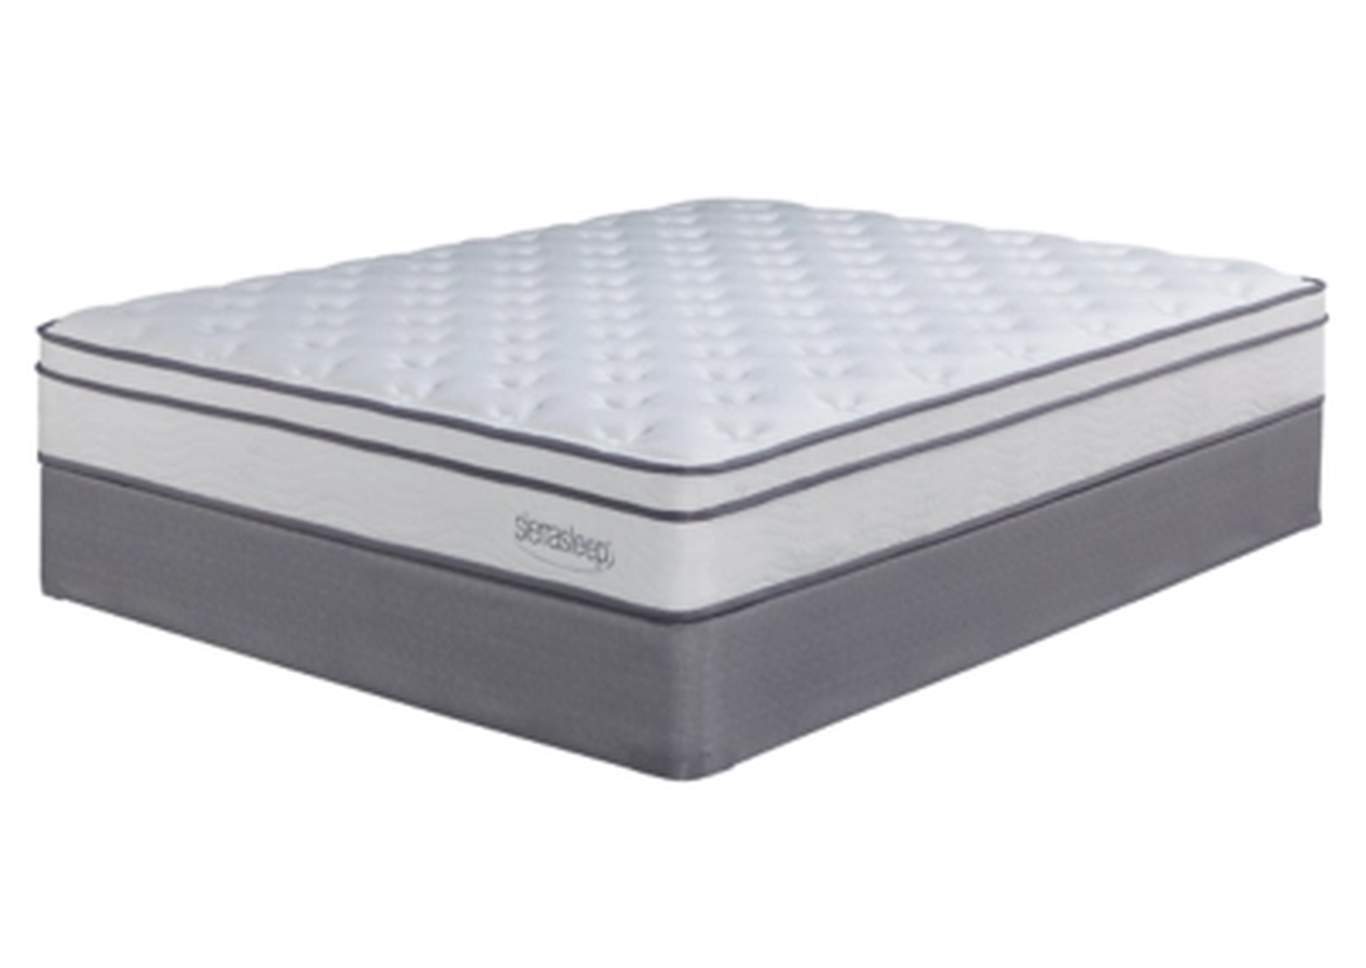 Longs Peak Limited White California King Mattress,Sierra Sleep by Ashley